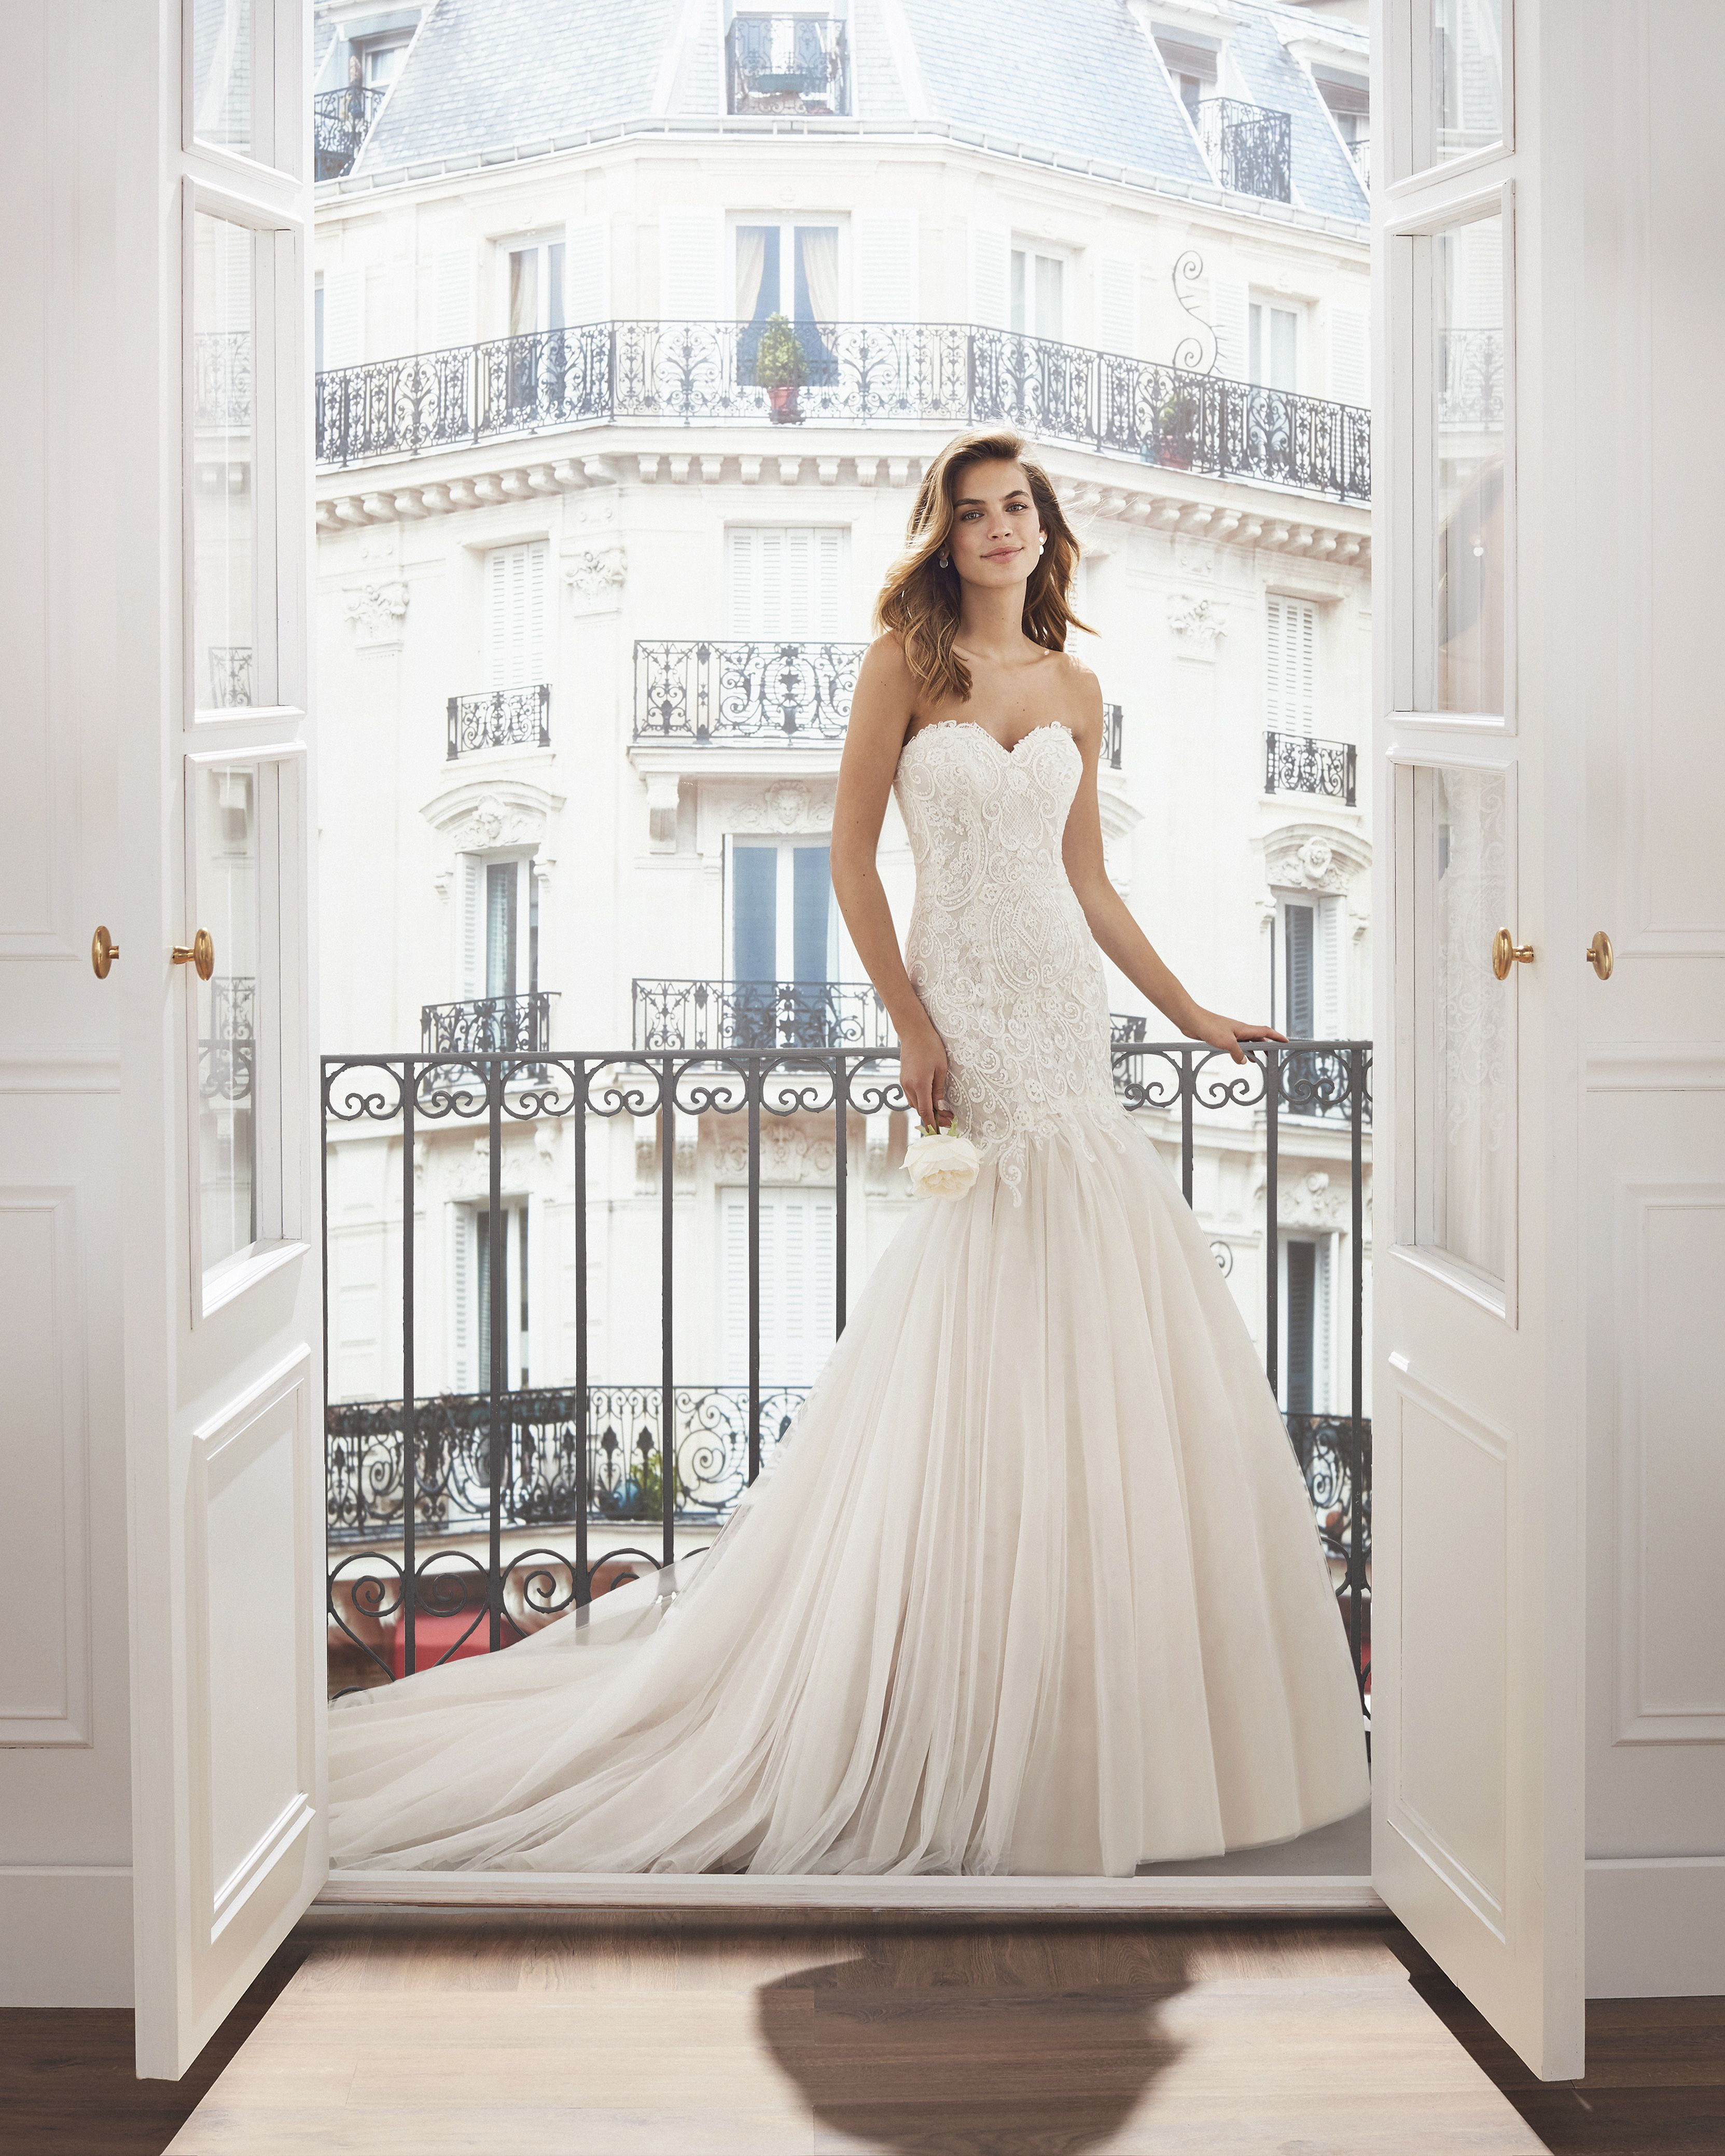 Sweetheart Neckline Lace Mermaid Wedding Dresses New 2019: Lace And Tulle Mermaid-style Wedding Dress. Sweetheart